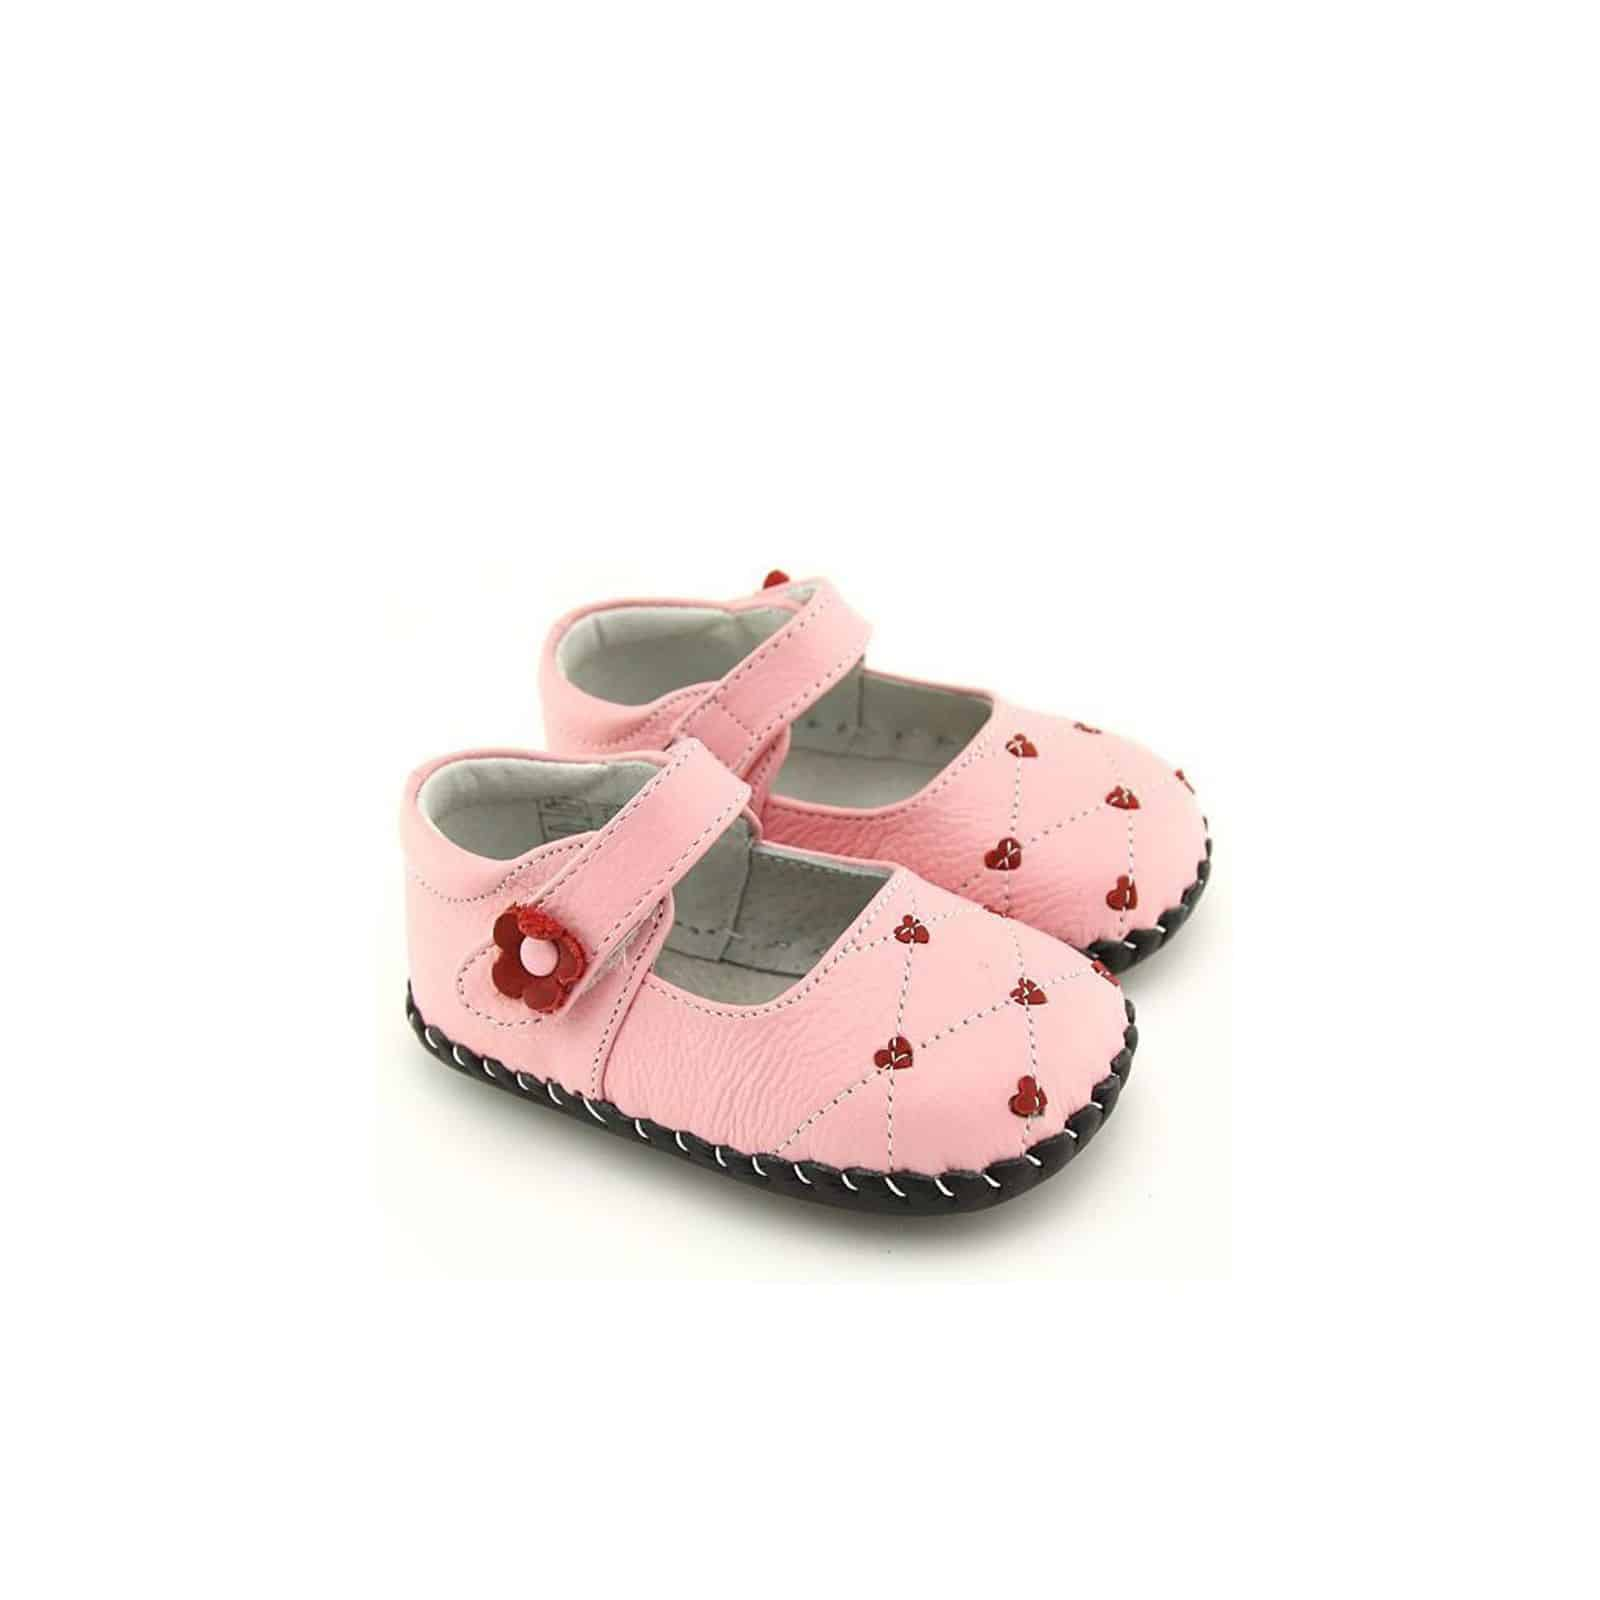 cb4097aeee88 FREYCOO - Baby girls first steps soft leather shoes